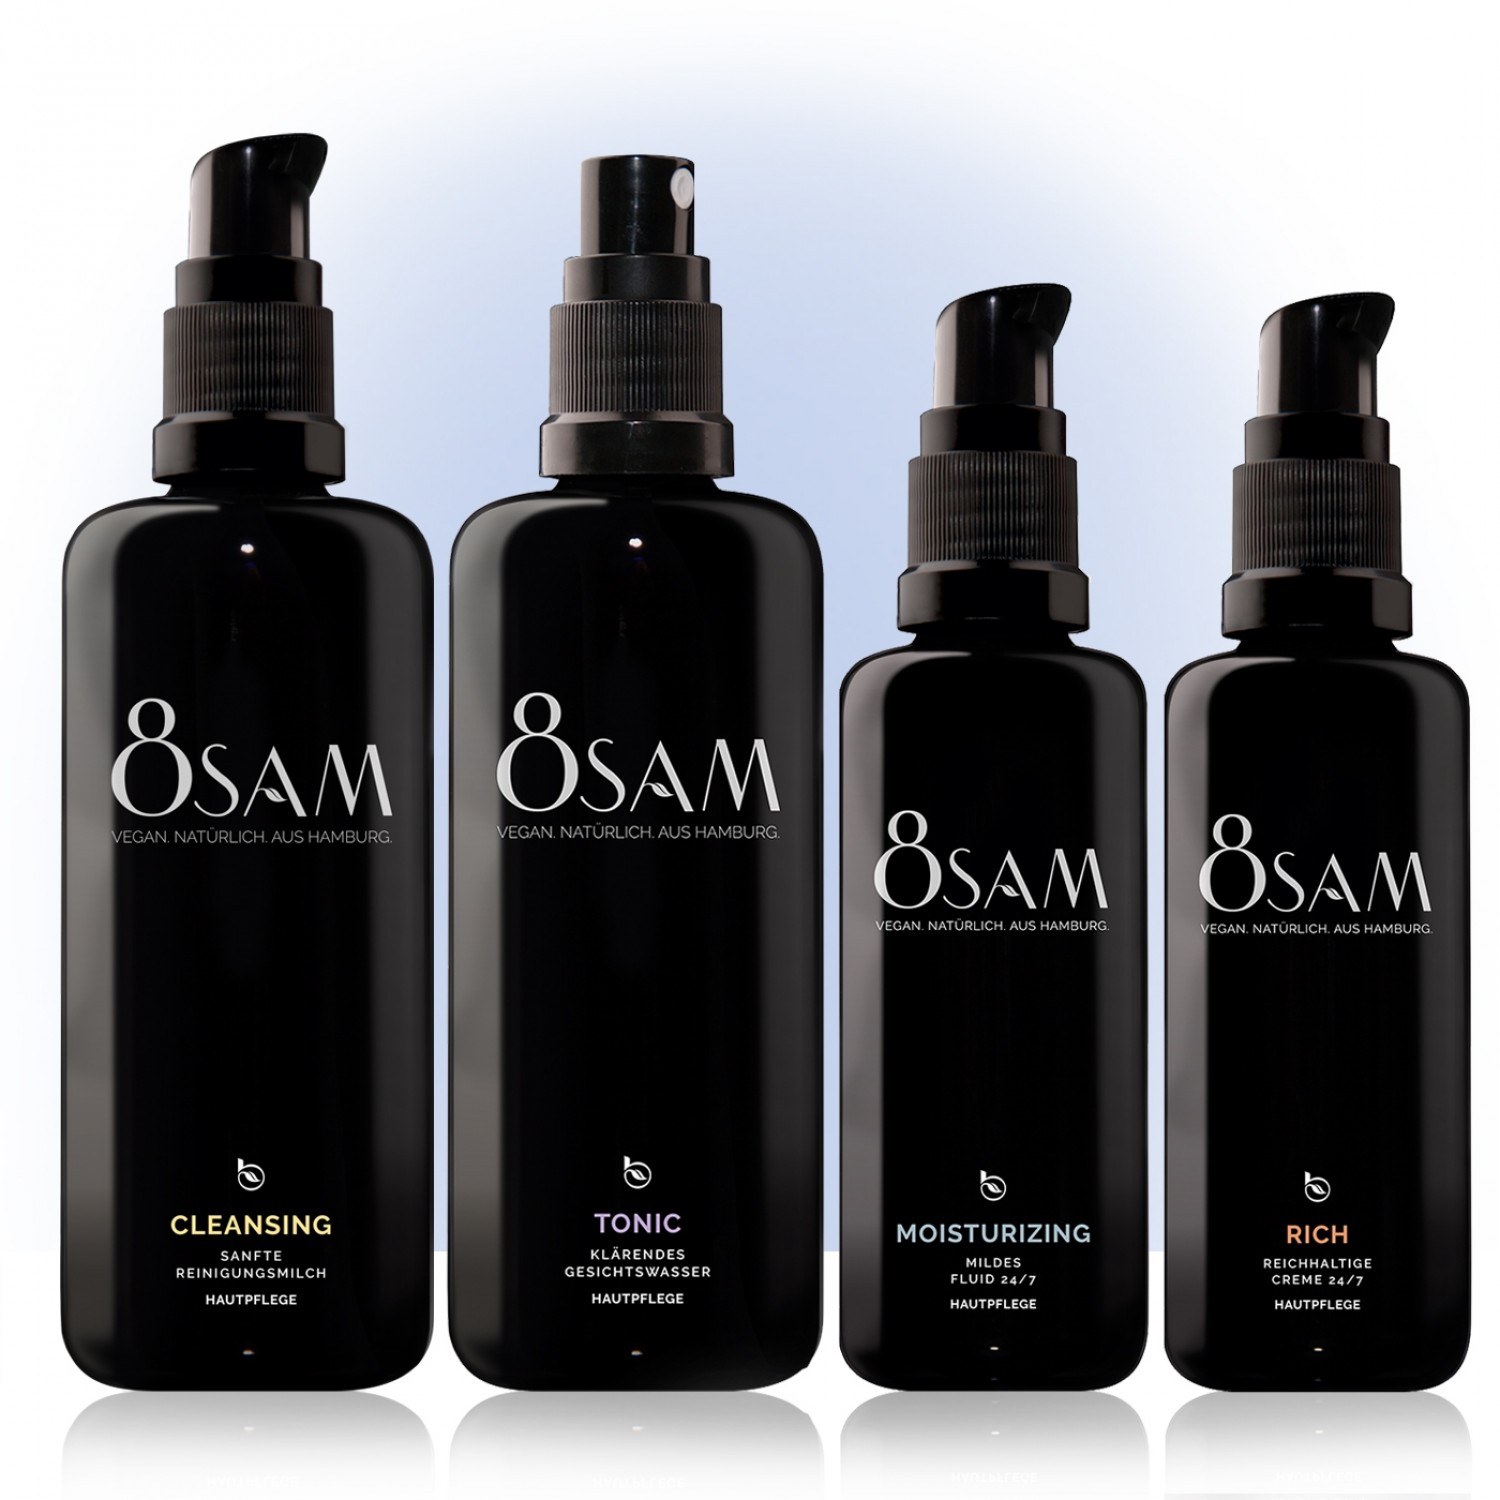 8SAM Mild Rich vegan care set No9 for face & skin | Blattkultur